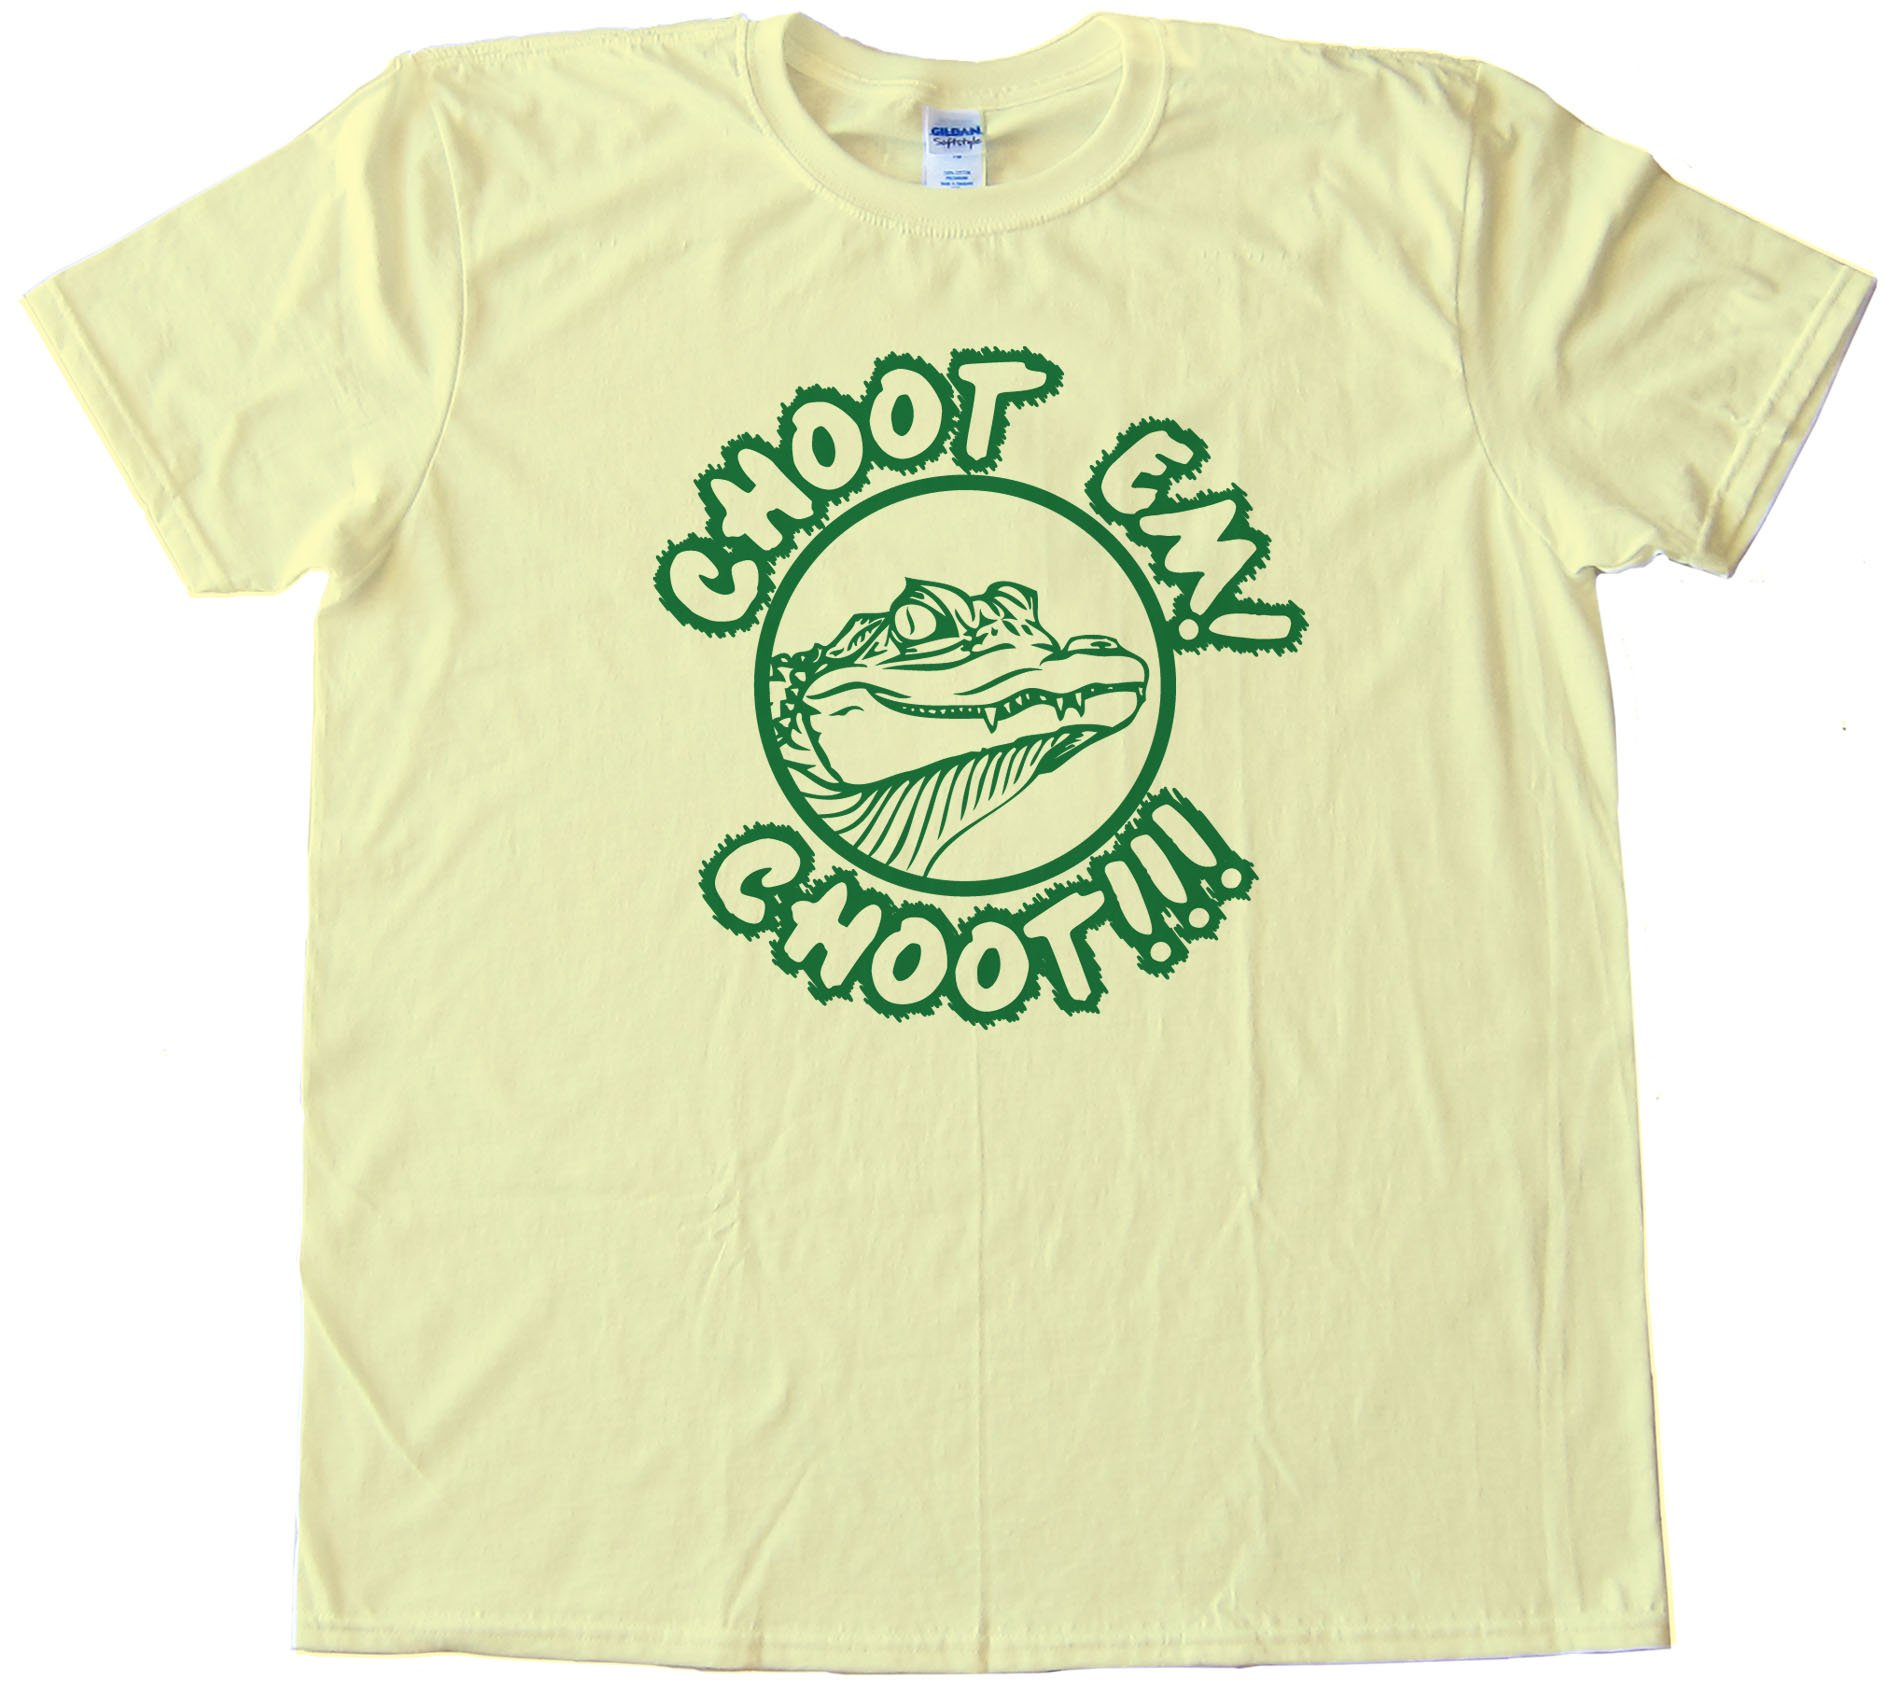 Choot Em Choot!!! - Swamp People Tee Shirt